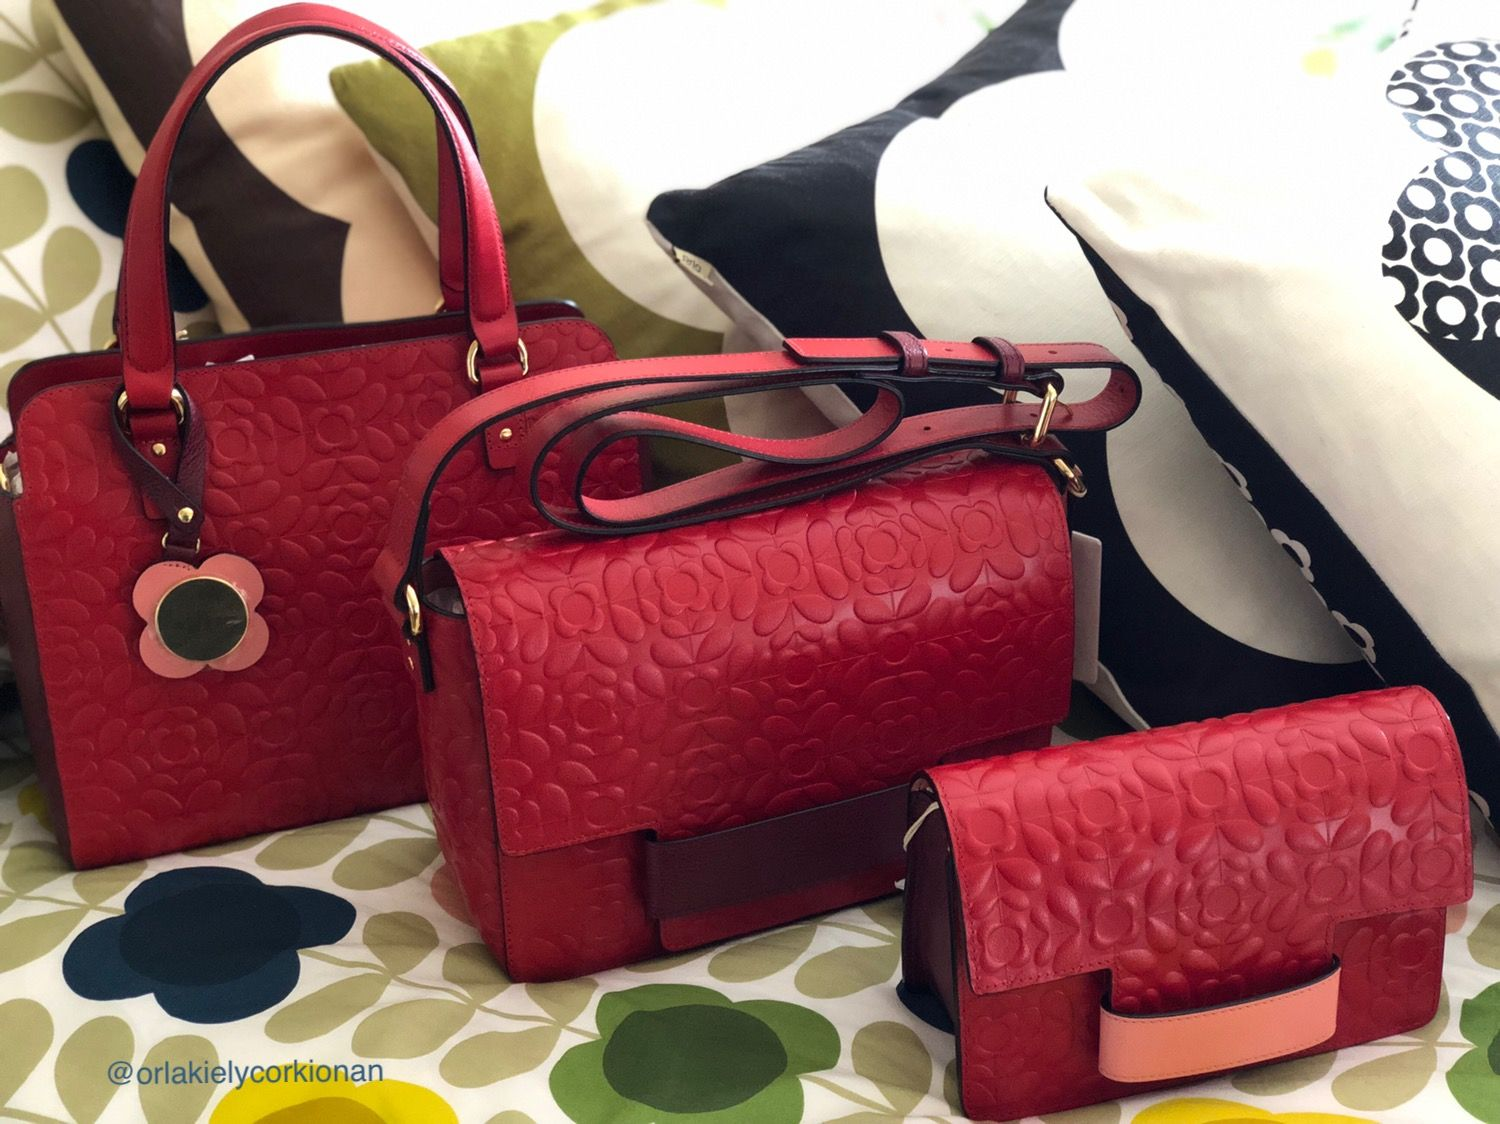 1d7ab474a0 Orla Kiely Lipstick Red Jeanette, Rosemary & Sweet Pea bag #orlakiely  #orlakielybag #